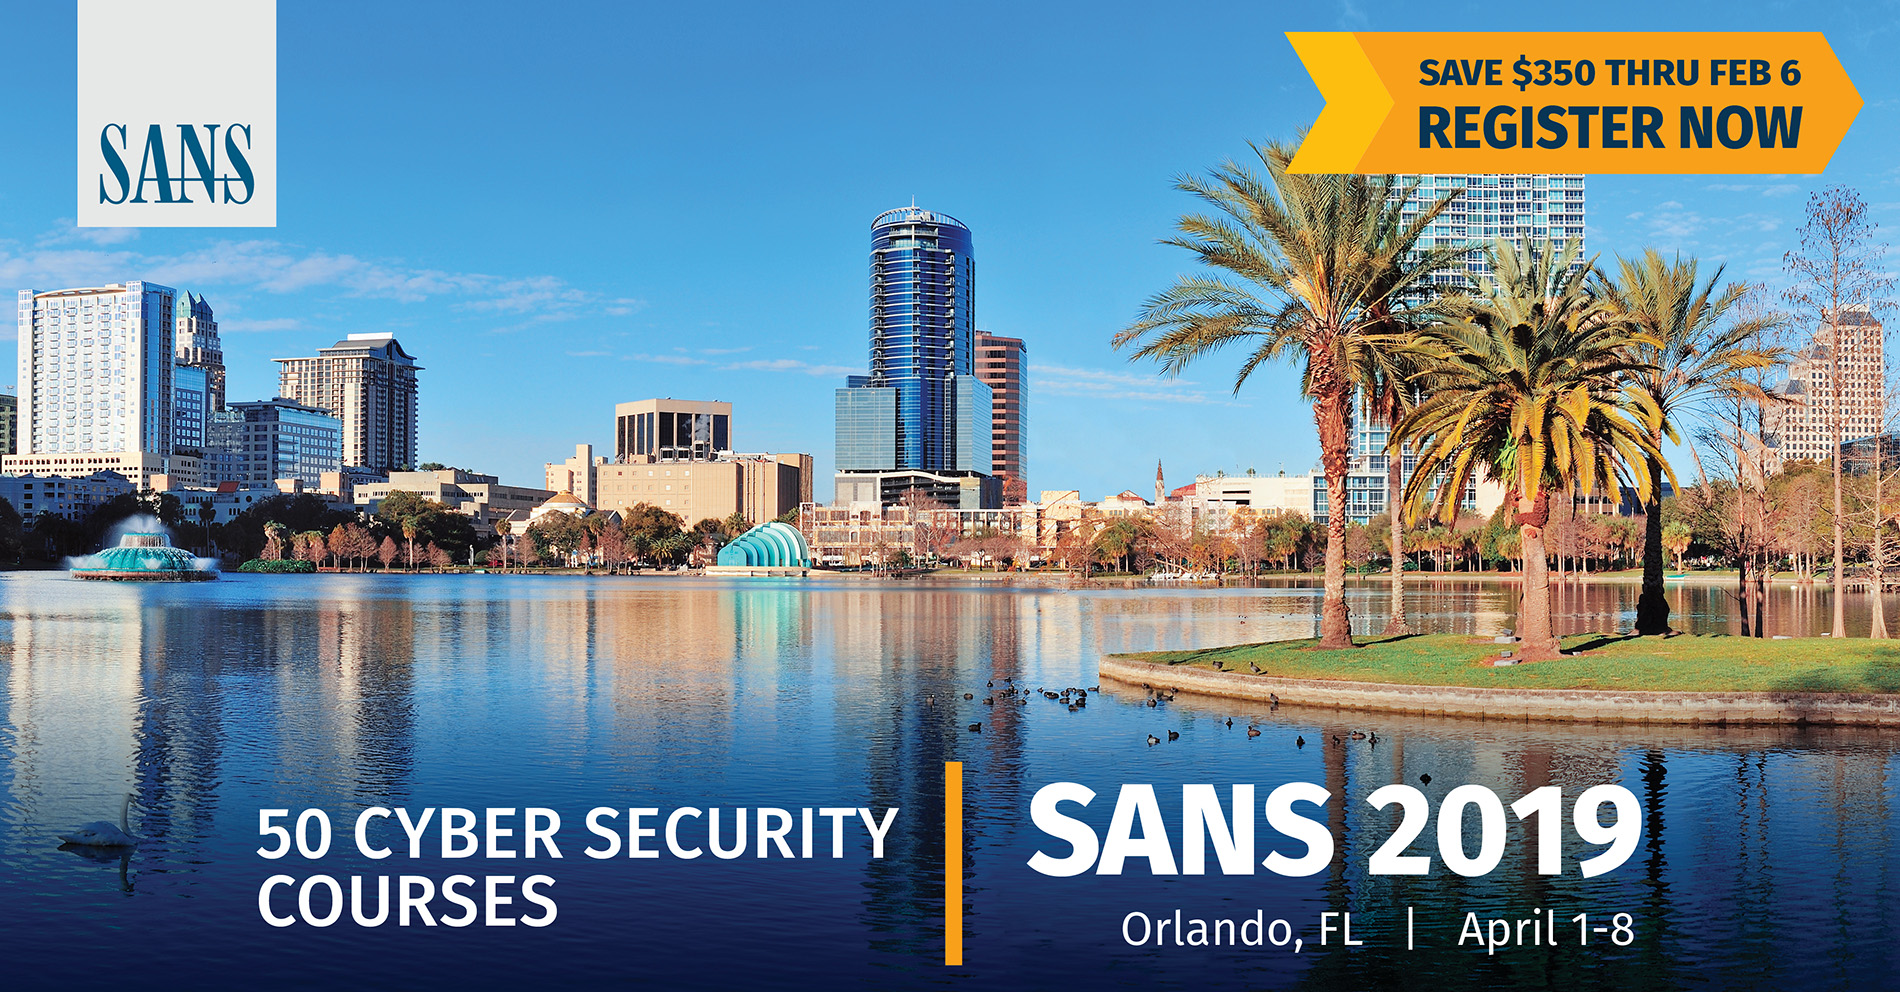 SANS 2019 Orlando Training Event Features 50 Courses to Develop Cyber Security Skills at Every Level